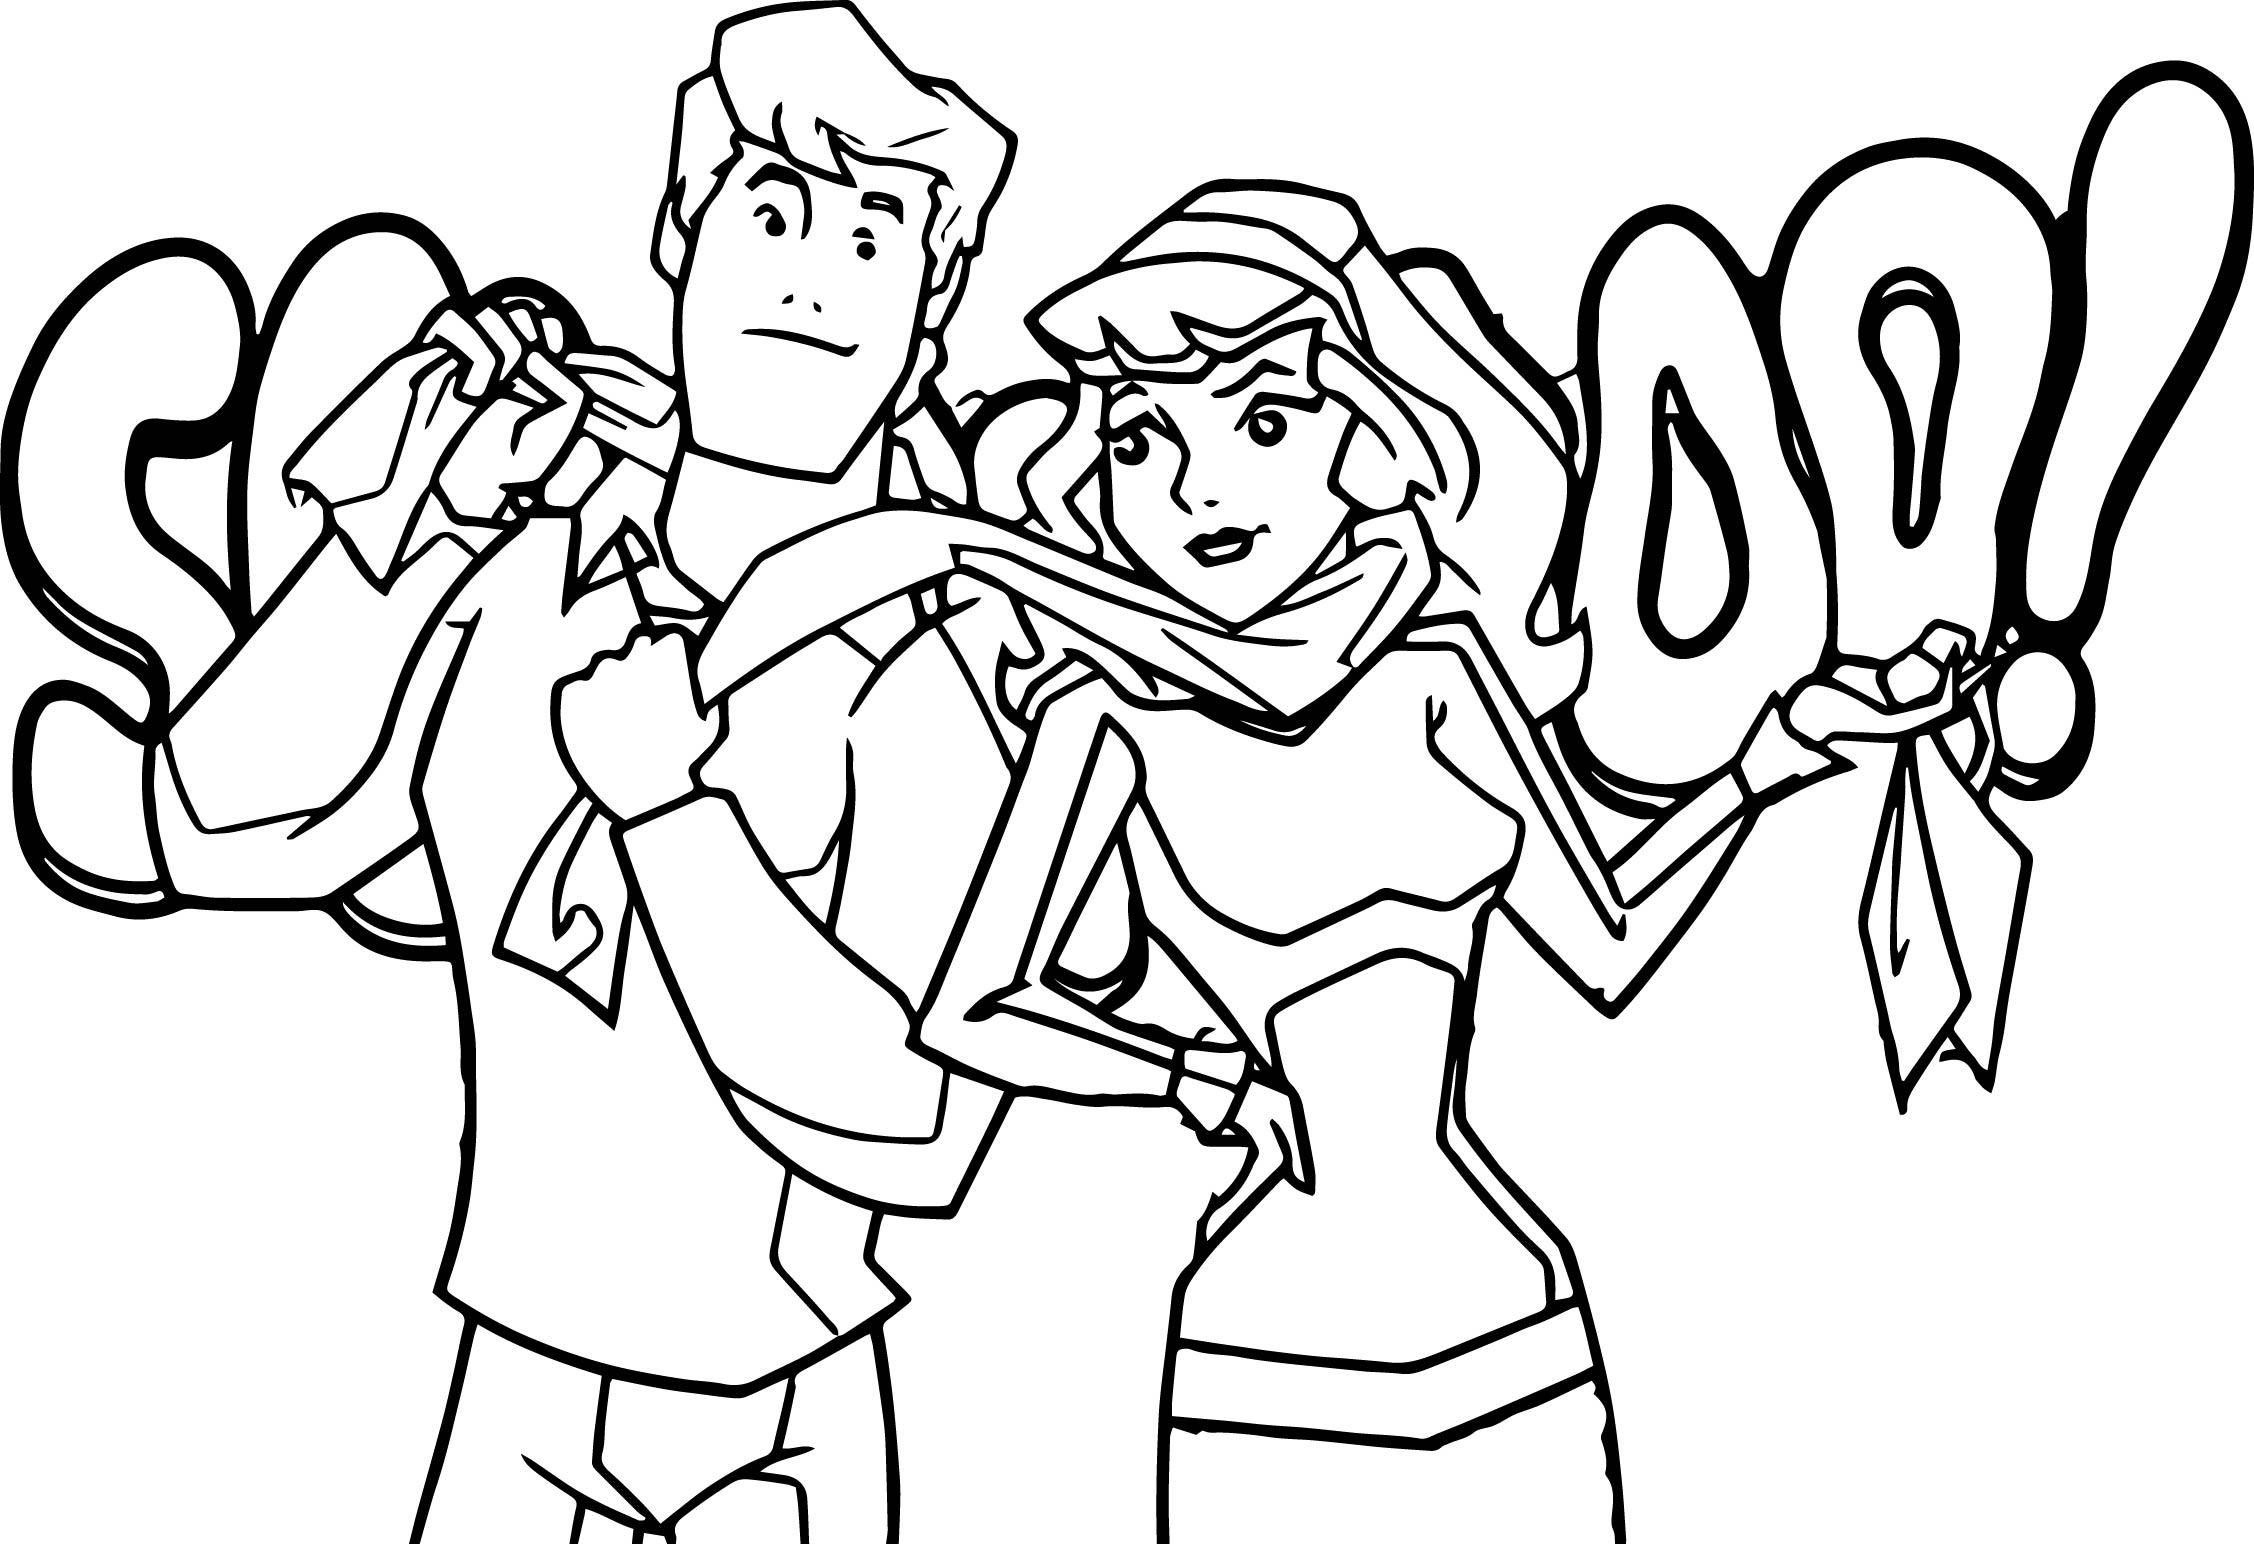 free mystery picture coloring pages - photo#30